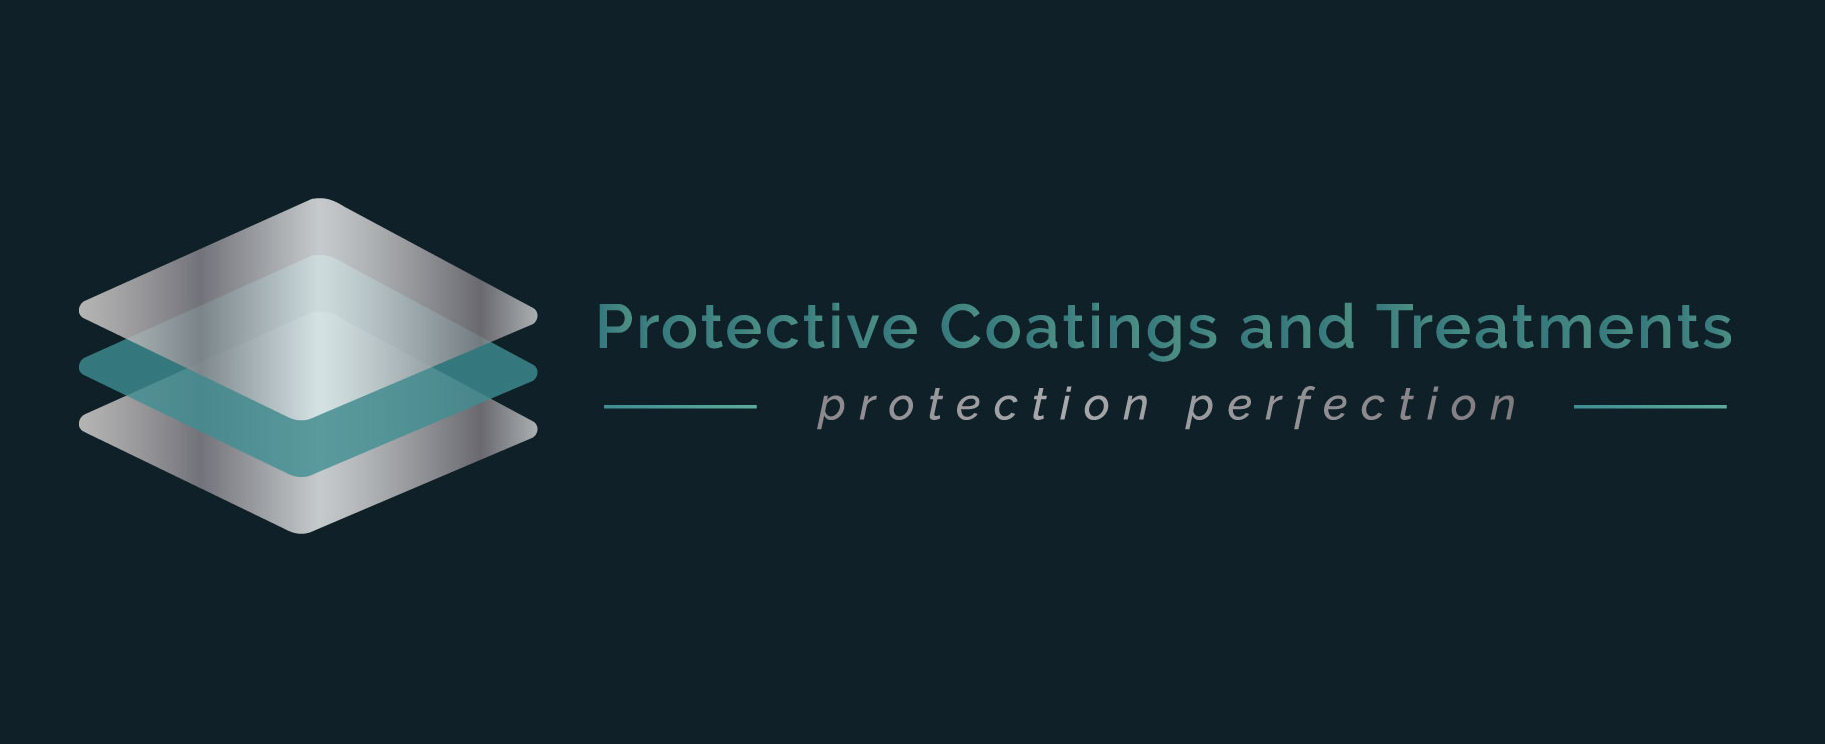 Protective Coatings and Treatments Ltd